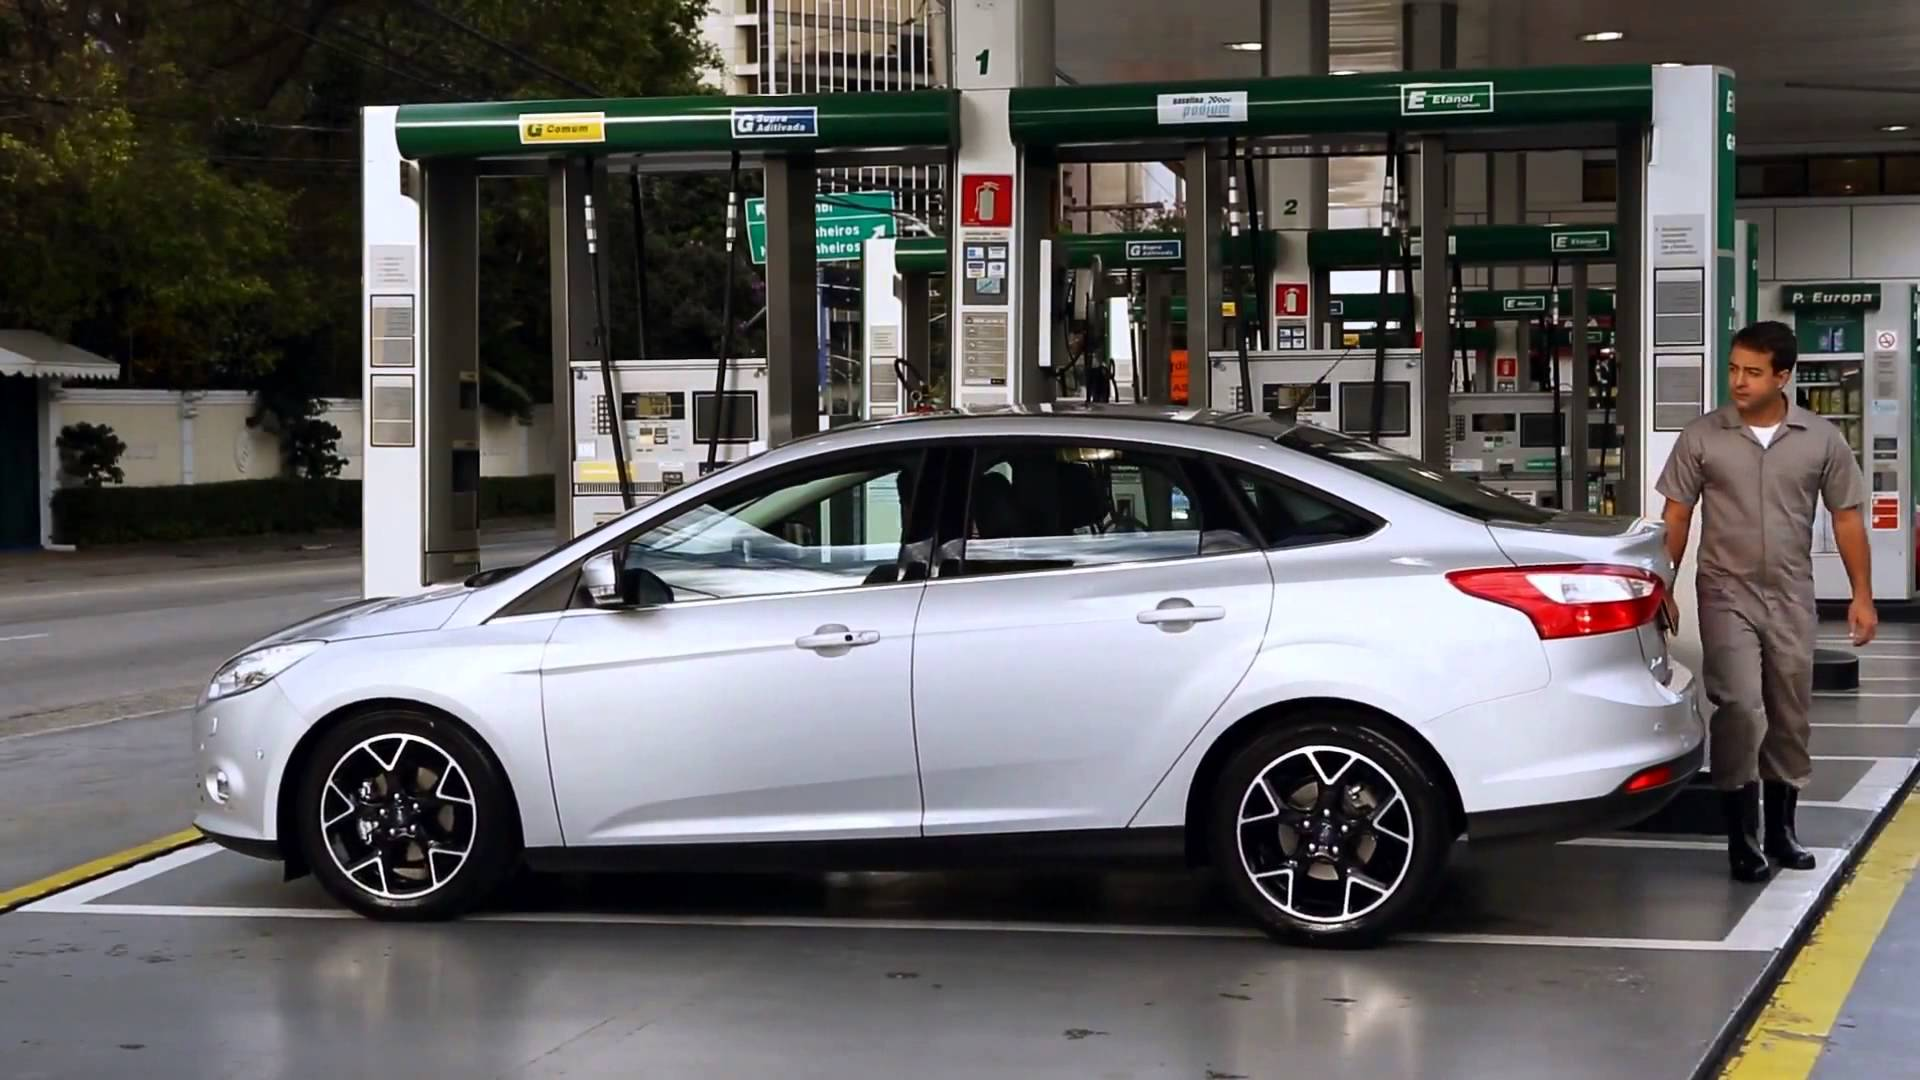 Ford Focus 2 0 2014 Technical Specifications Interior And Exterior Photo